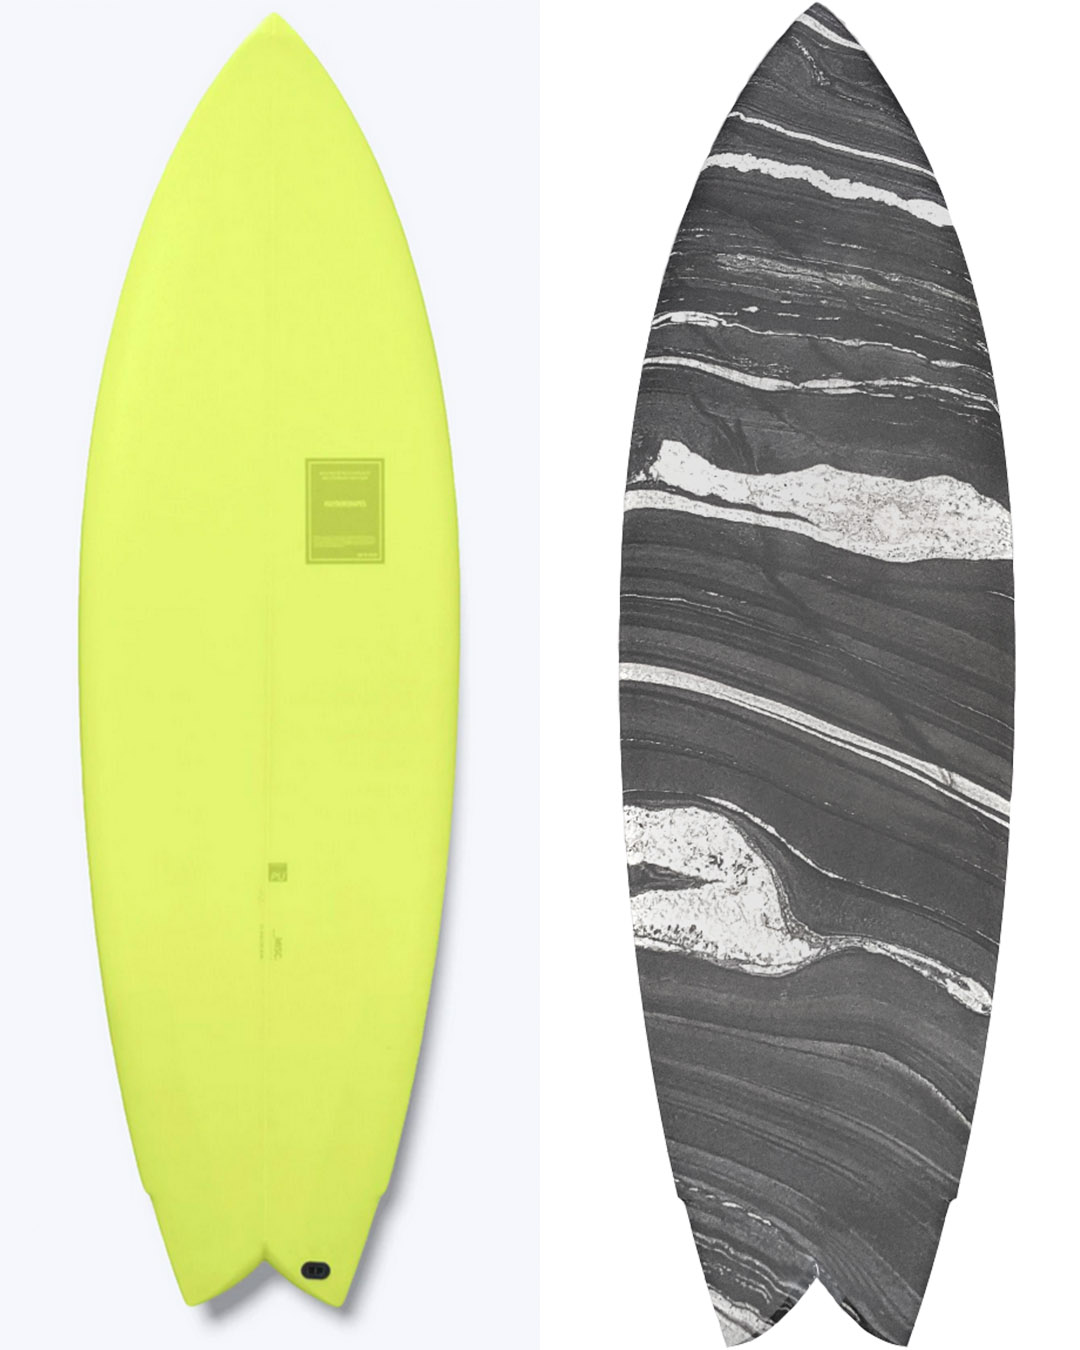 The Haydenshapes x Superette surfboards in wheatgrass and marble.